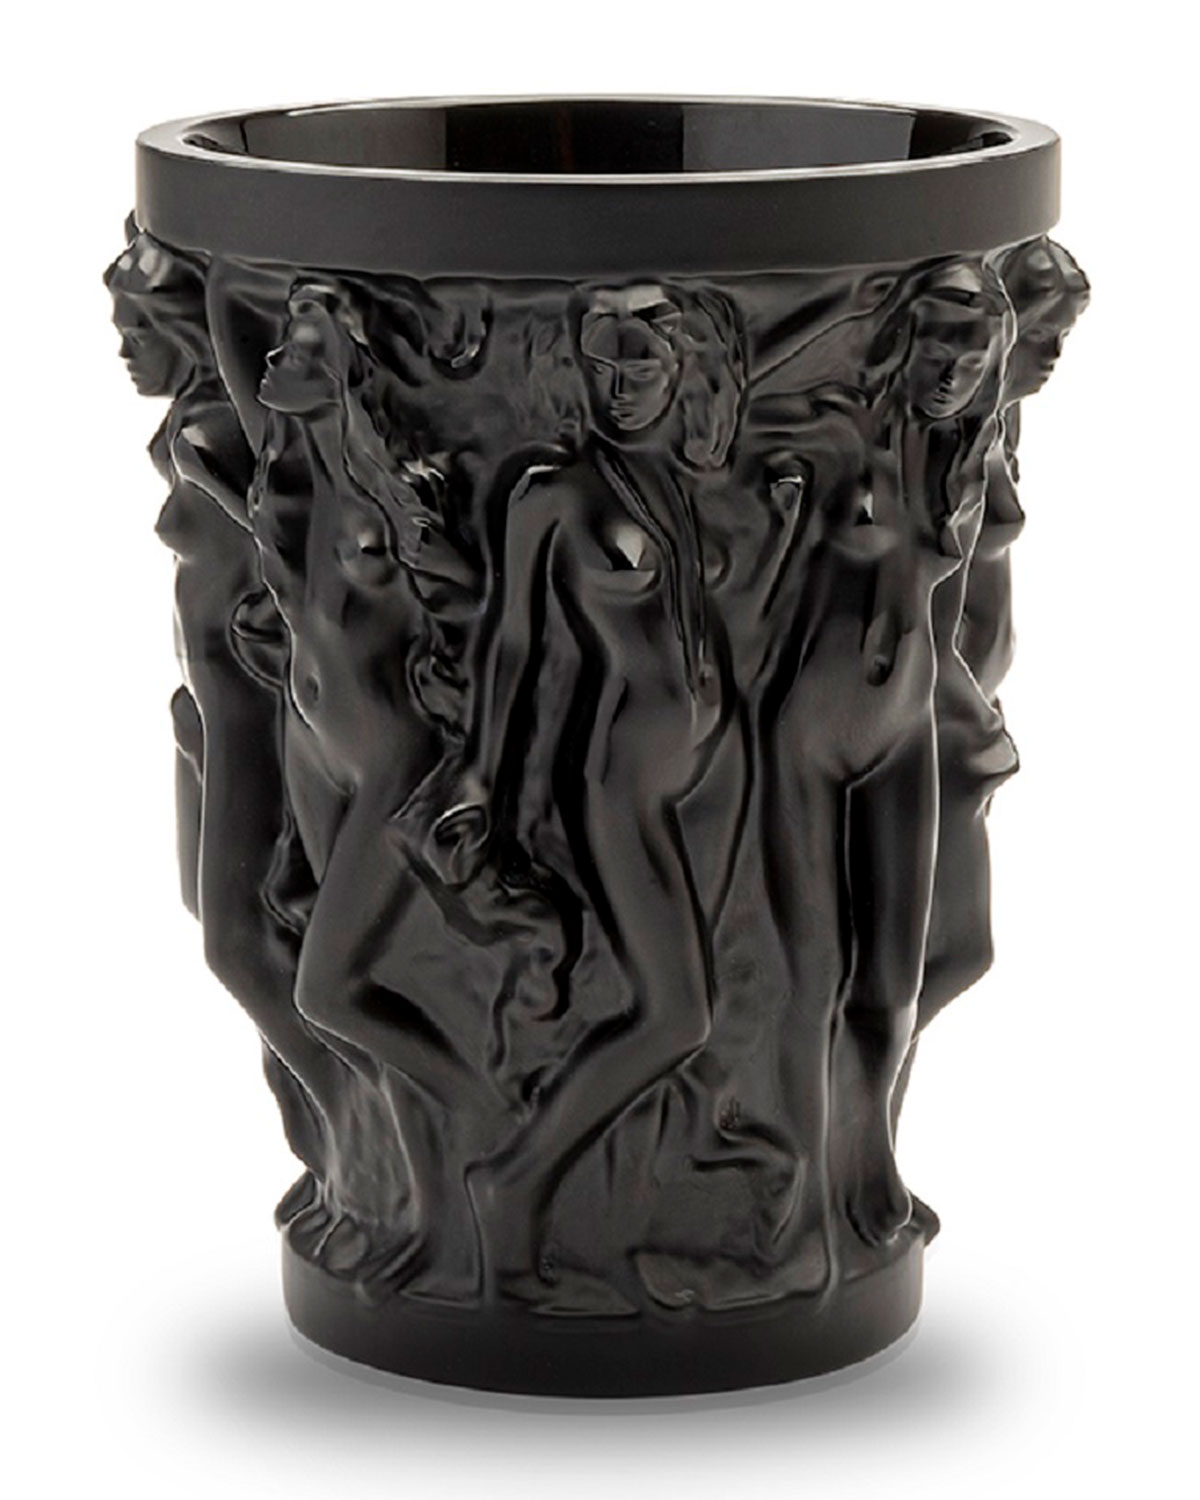 Lalique Home decors LIMITED EDITION SIRENES BLACK VASE BY TERRY RODGERS